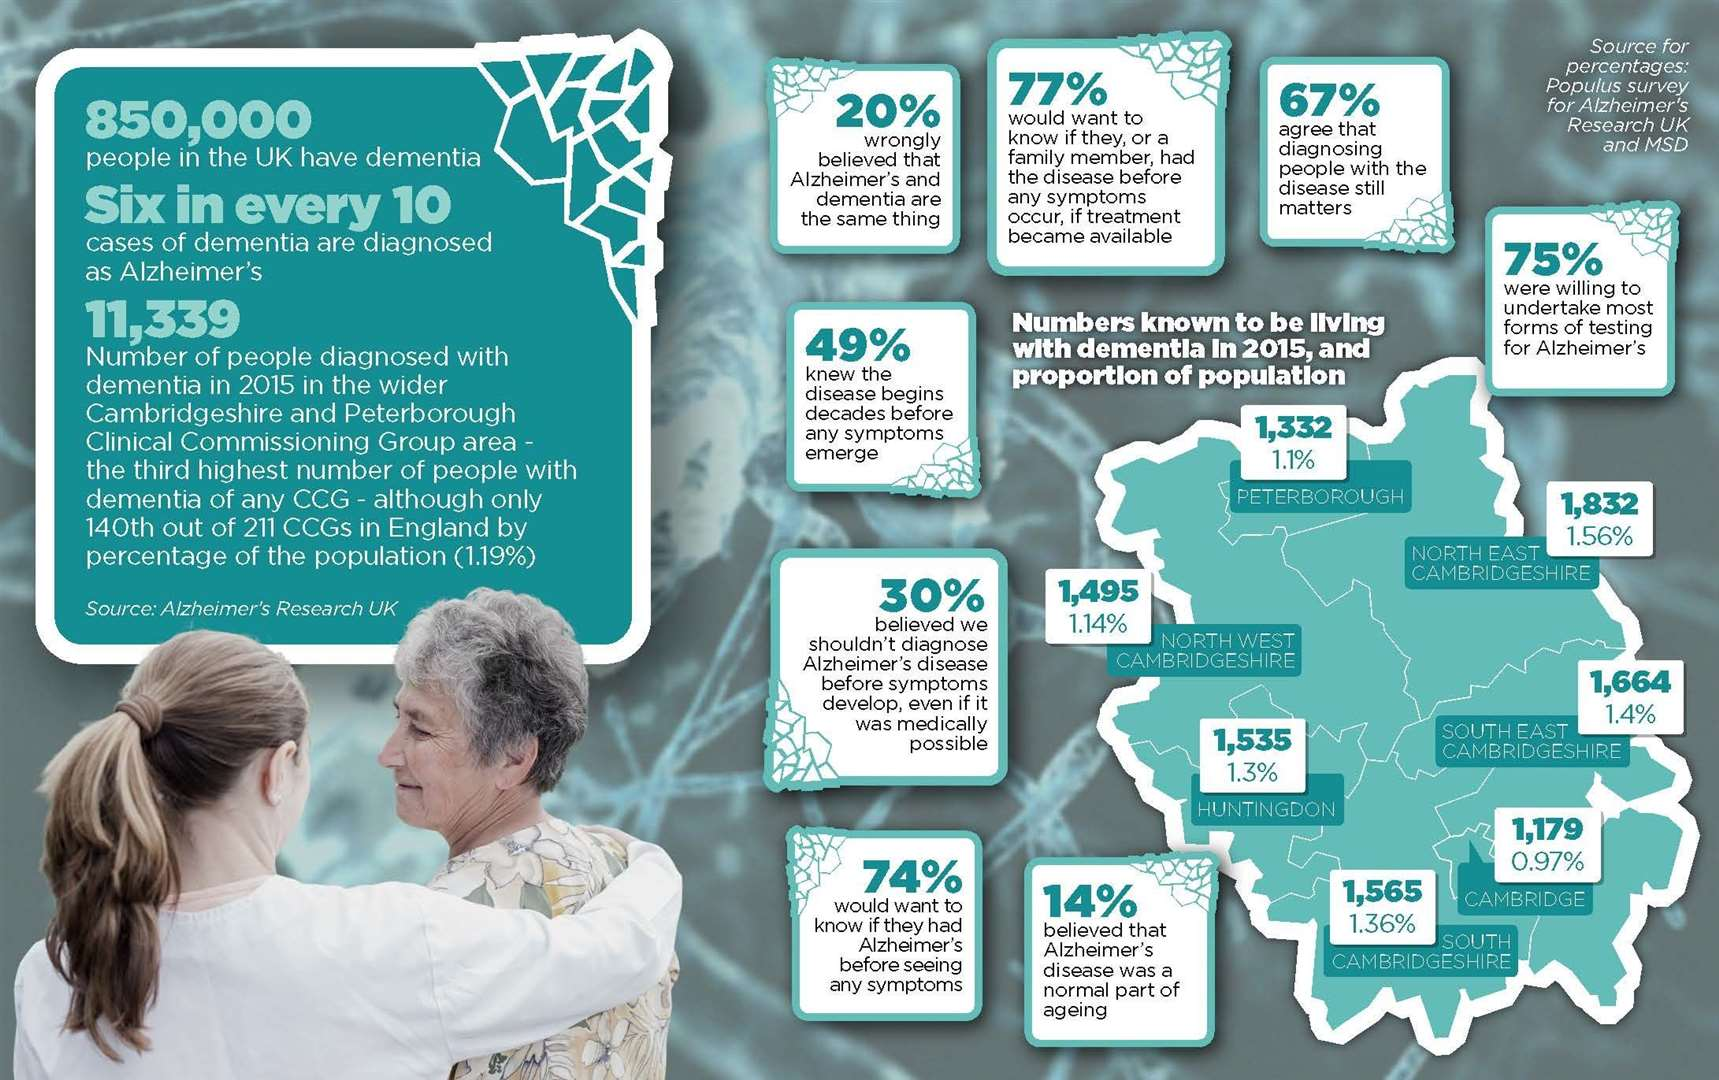 Results of the ARUK survey and Alzheimer's statistics in Cambridgeshire and beyond. Graphic: Cambridge Independent